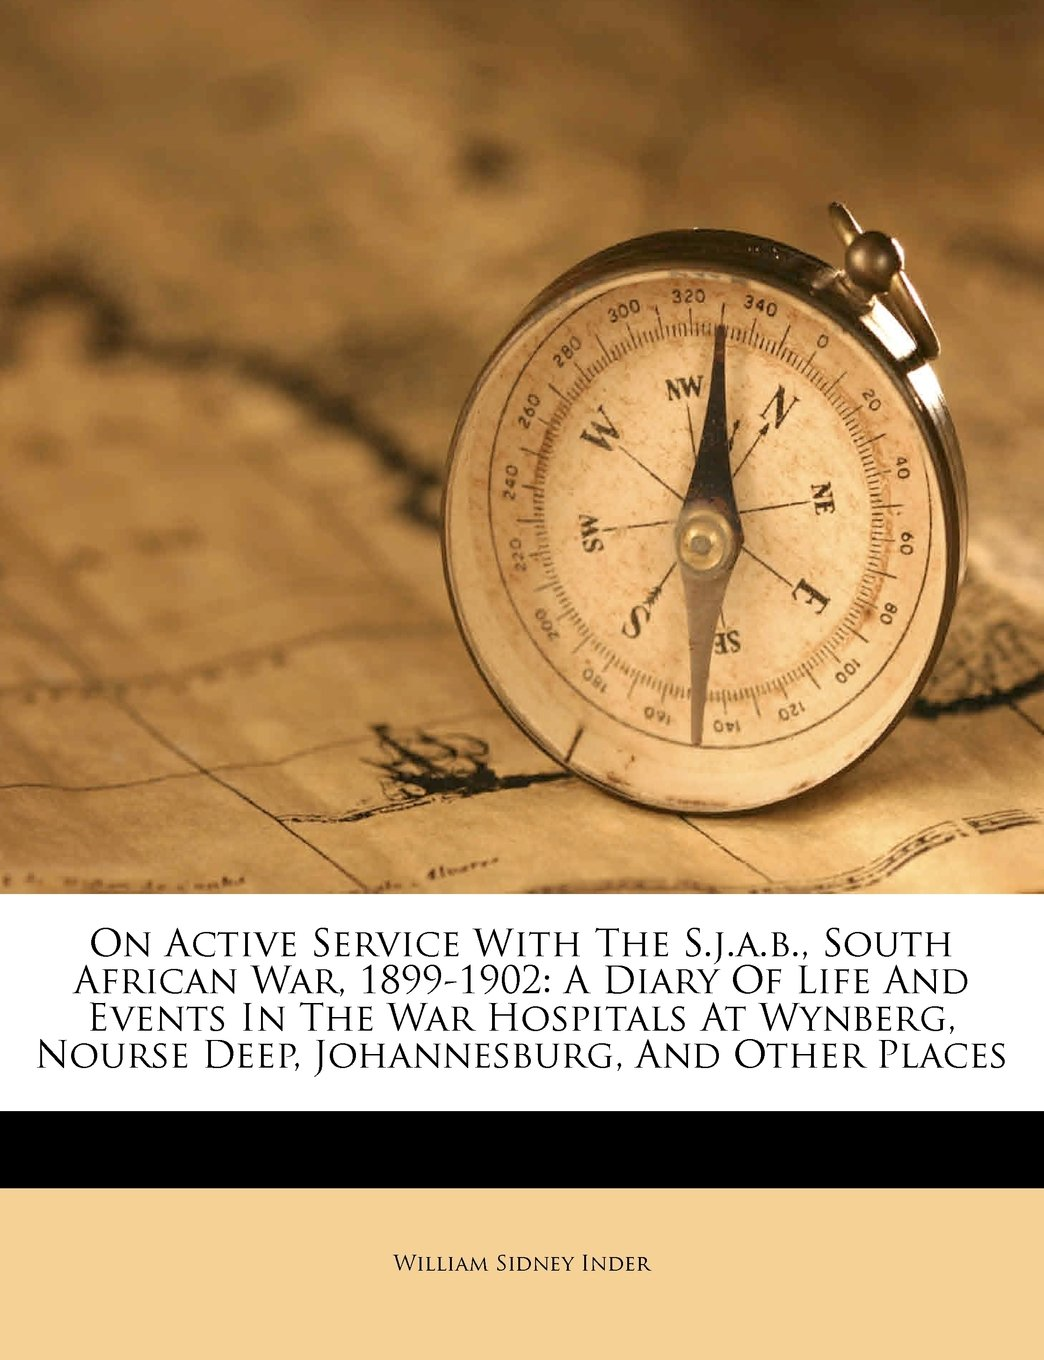 On Active Service With The S.j.a.b., South African War, 1899-1902: A Diary Of Life And Events In The War Hospitals At Wynberg, Nourse Deep, Johannesburg, And Other Places pdf